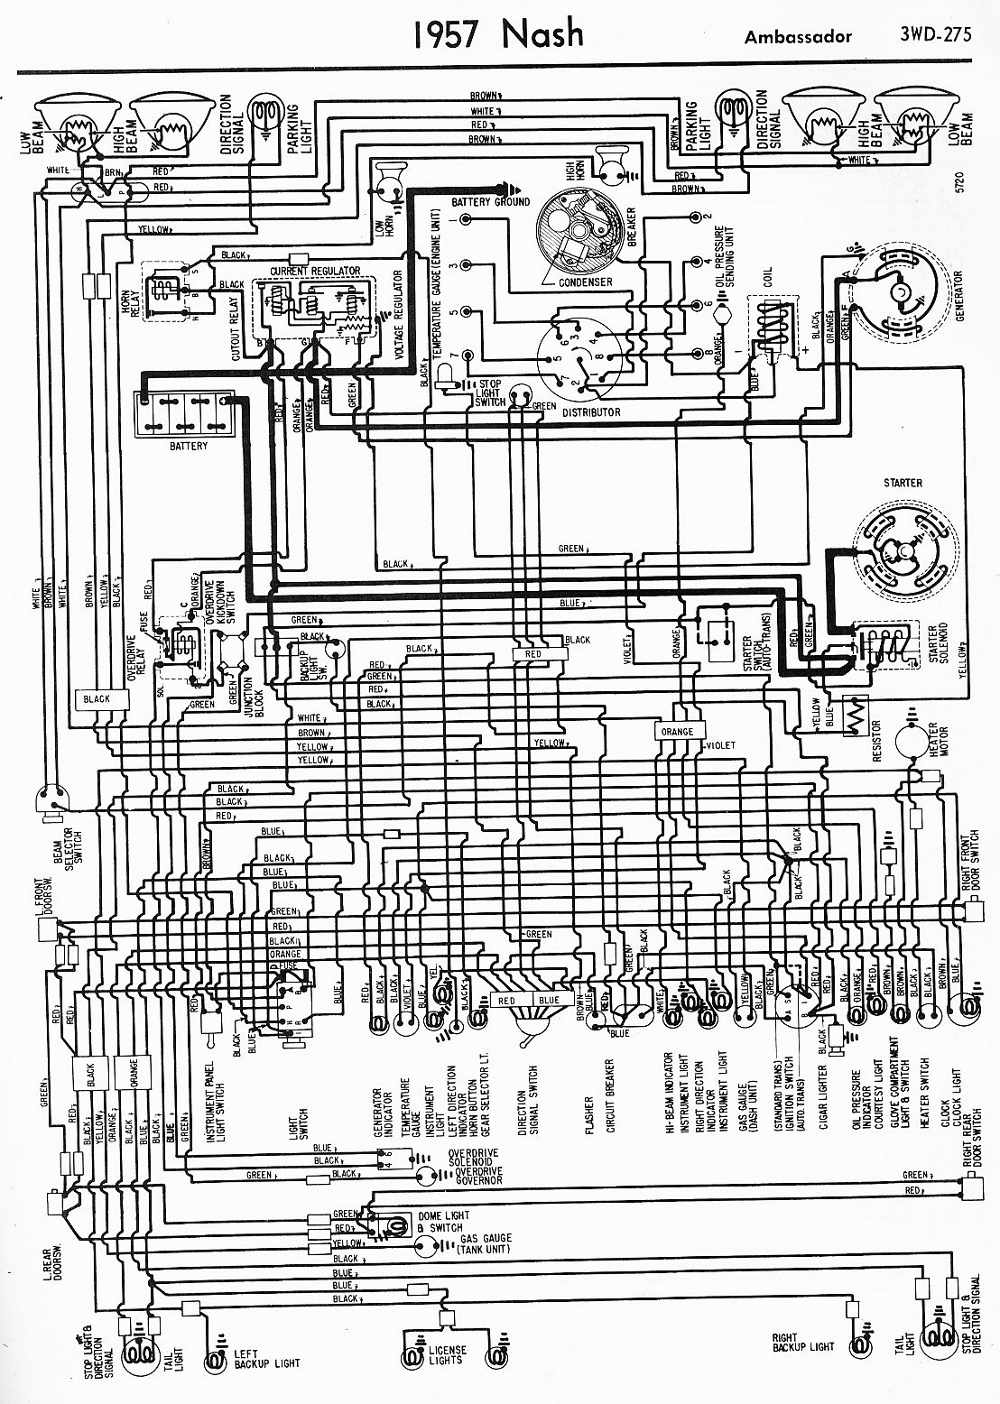 2003 Windstar Radio Wiring Cd Player additionally Audiovox Car Stereo Wiring Diagram besides Asus Wiring Diagram together with Remote Starter Wiring Diagram together with Ic 210 Schematic. on audiovox wiring tech